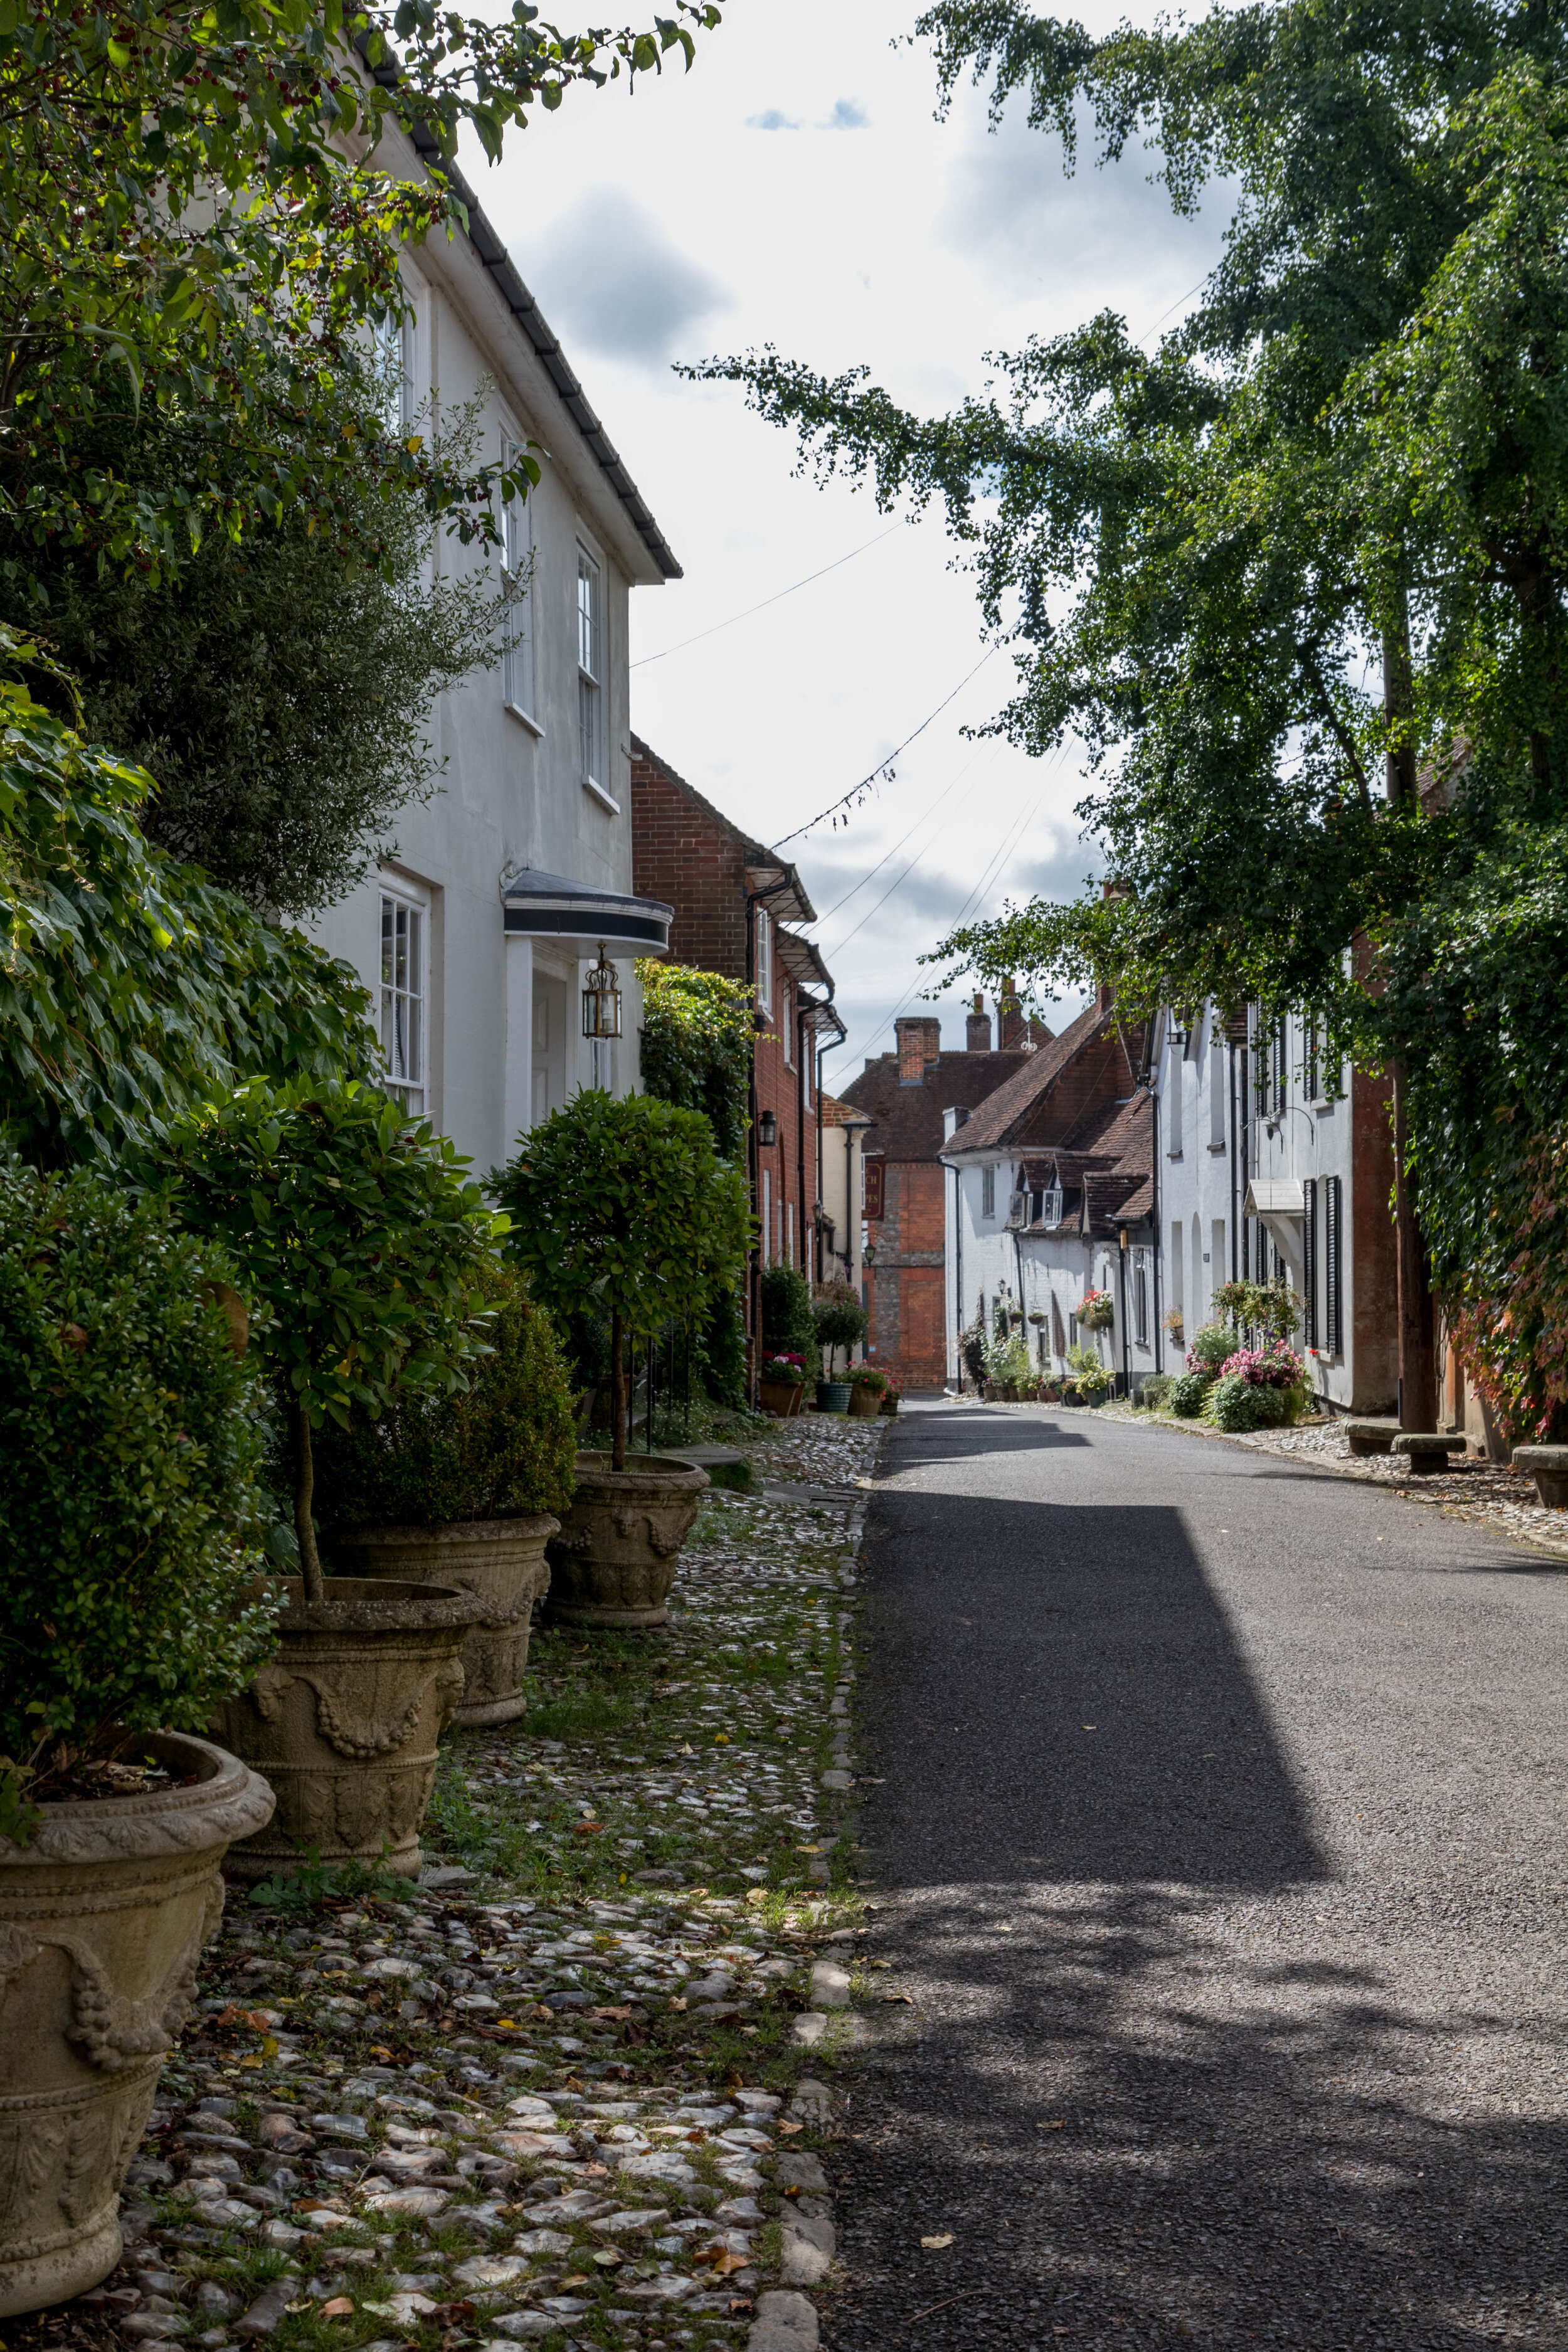 BISHOPS WALTHAM - U.K. - The quintessential Hampshire market town, Bishops Waltham offers a bit of local history with a vibrant small town scene. Come for a walk and enjoy the charming shops and beautiful façades. And yes, the building façades are worth the visit alone.